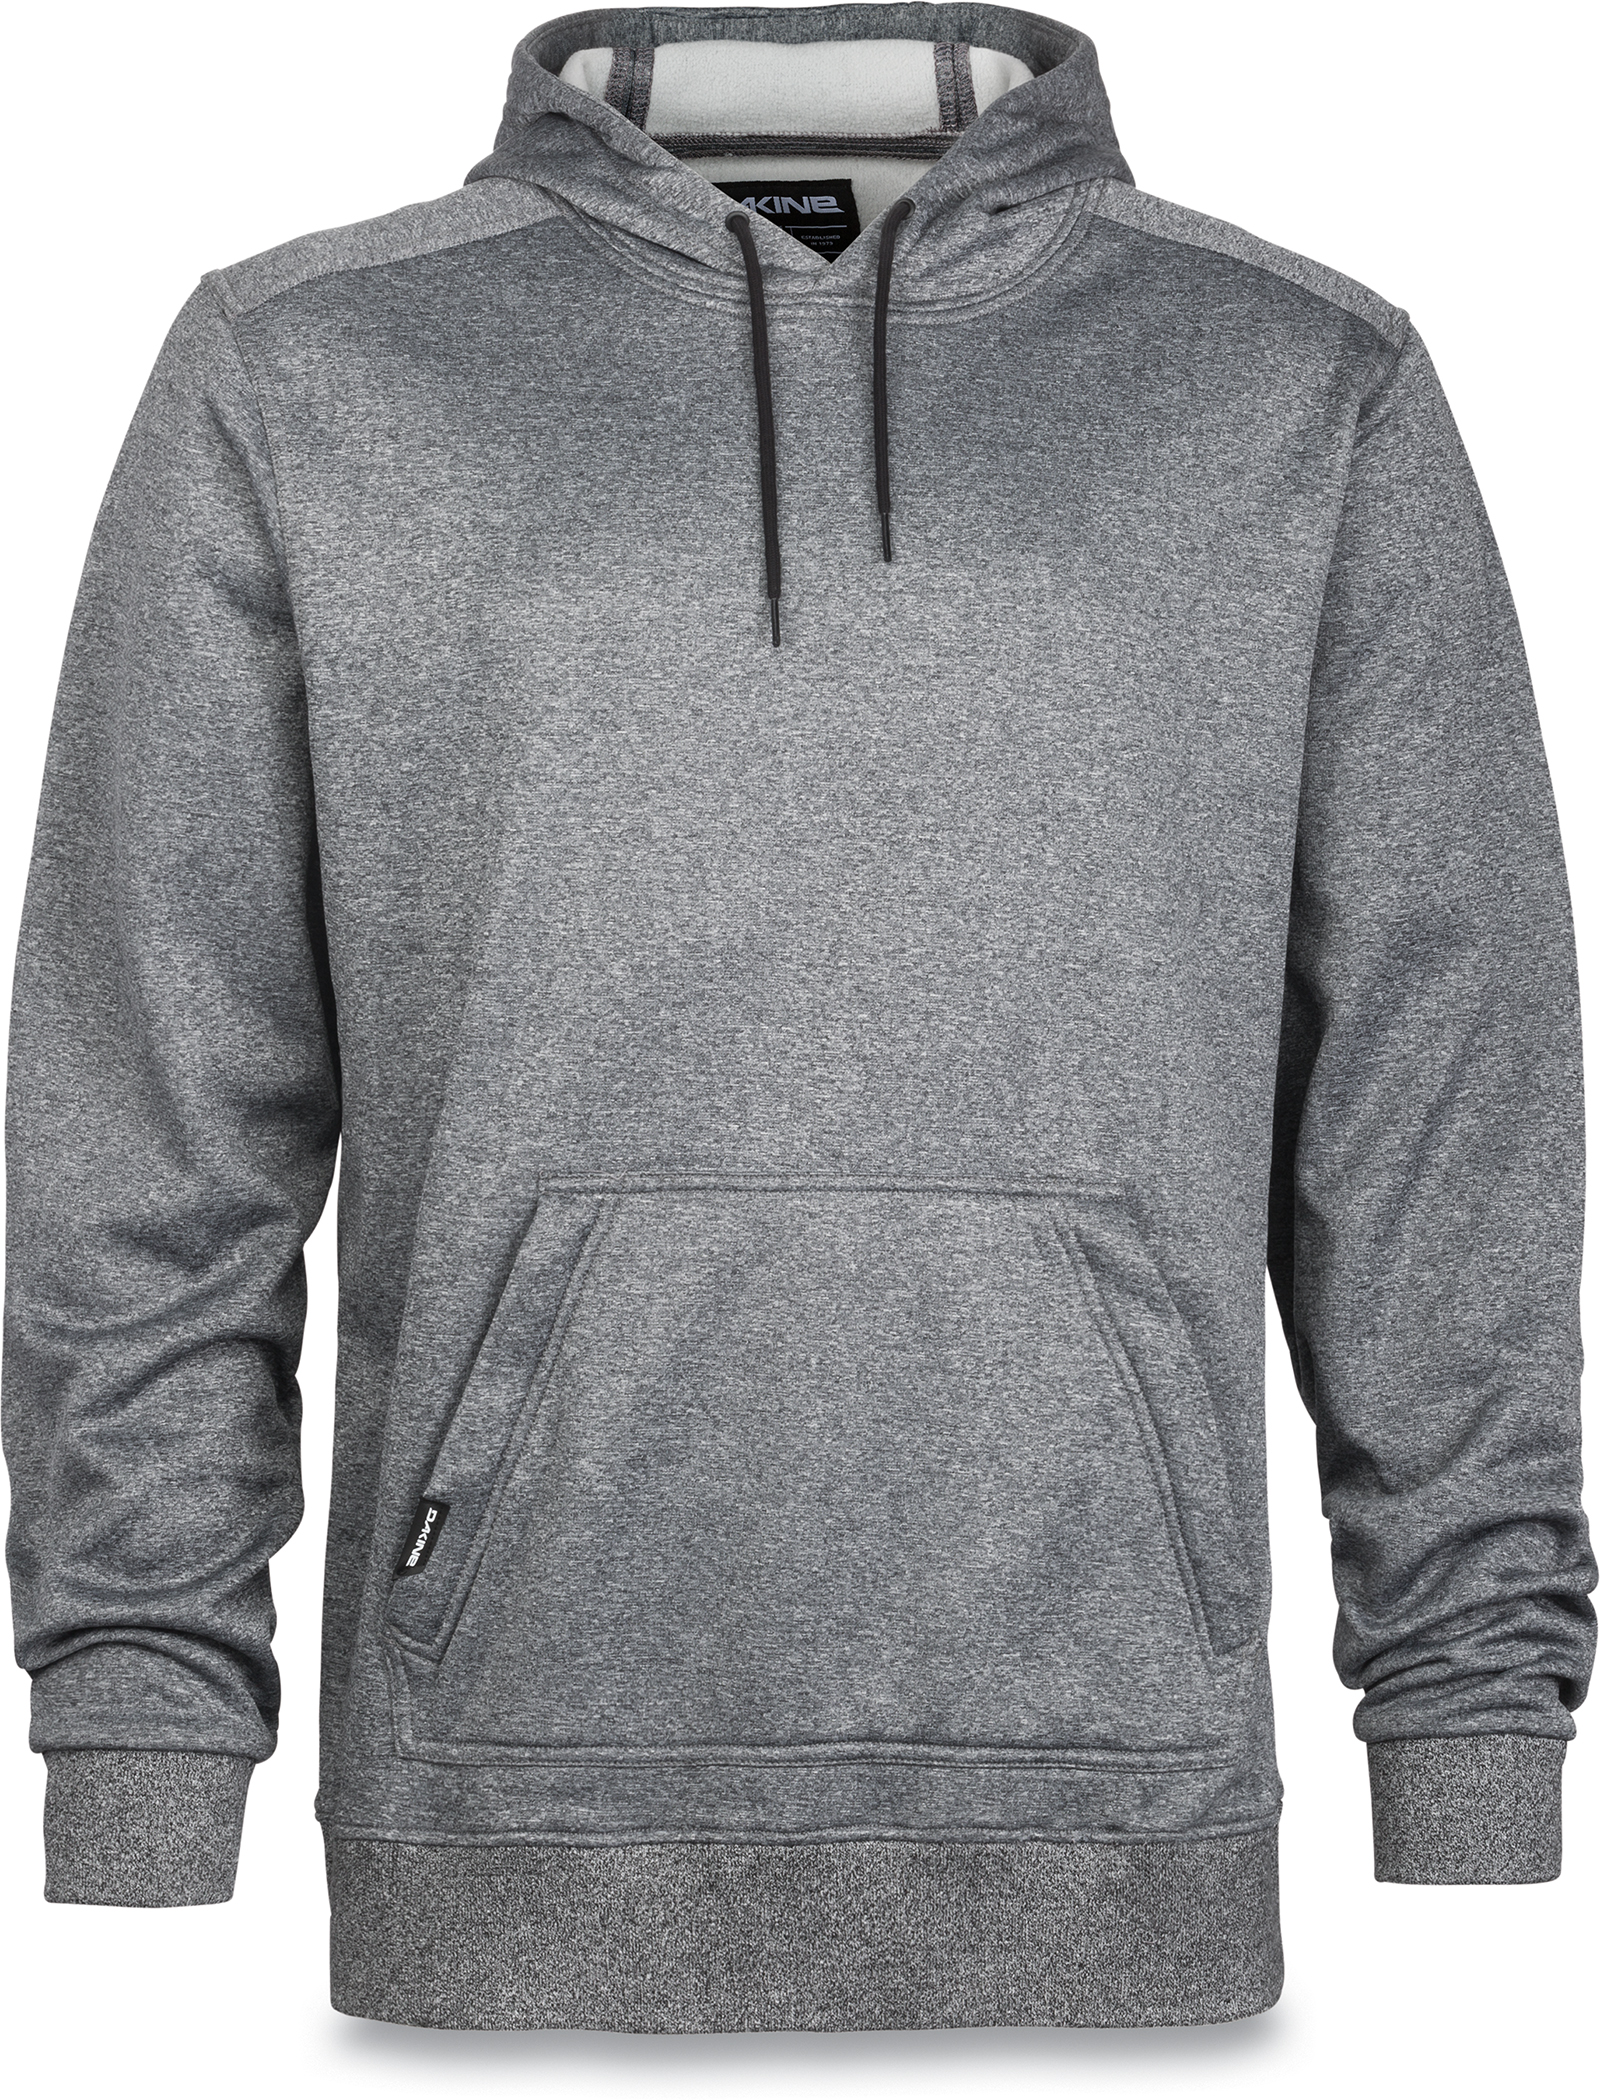 aa9acea1e749 Dakine Ironside Tech Hoodie - Men's, Up to 42% Off with Free S&H — CampSaver